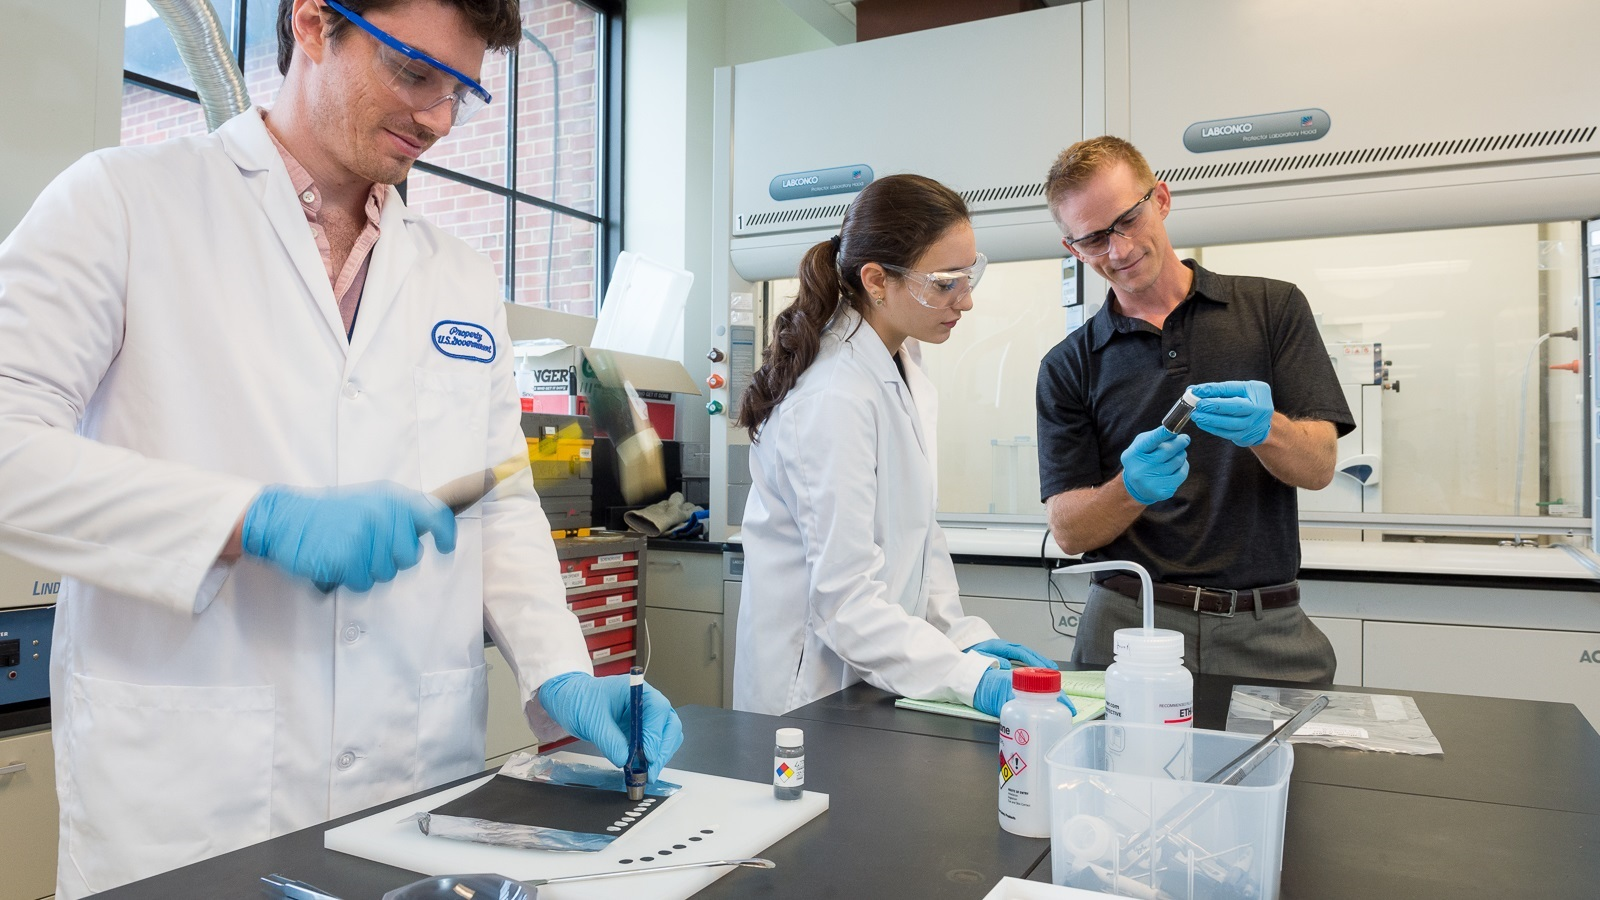 Argonne scientists Jason Croy, Manar Ishwait and Michael Murphy assemble lithium-ion battery electrodes for testing. (Image by Mark Lopez / Argonne National Laboratory.)